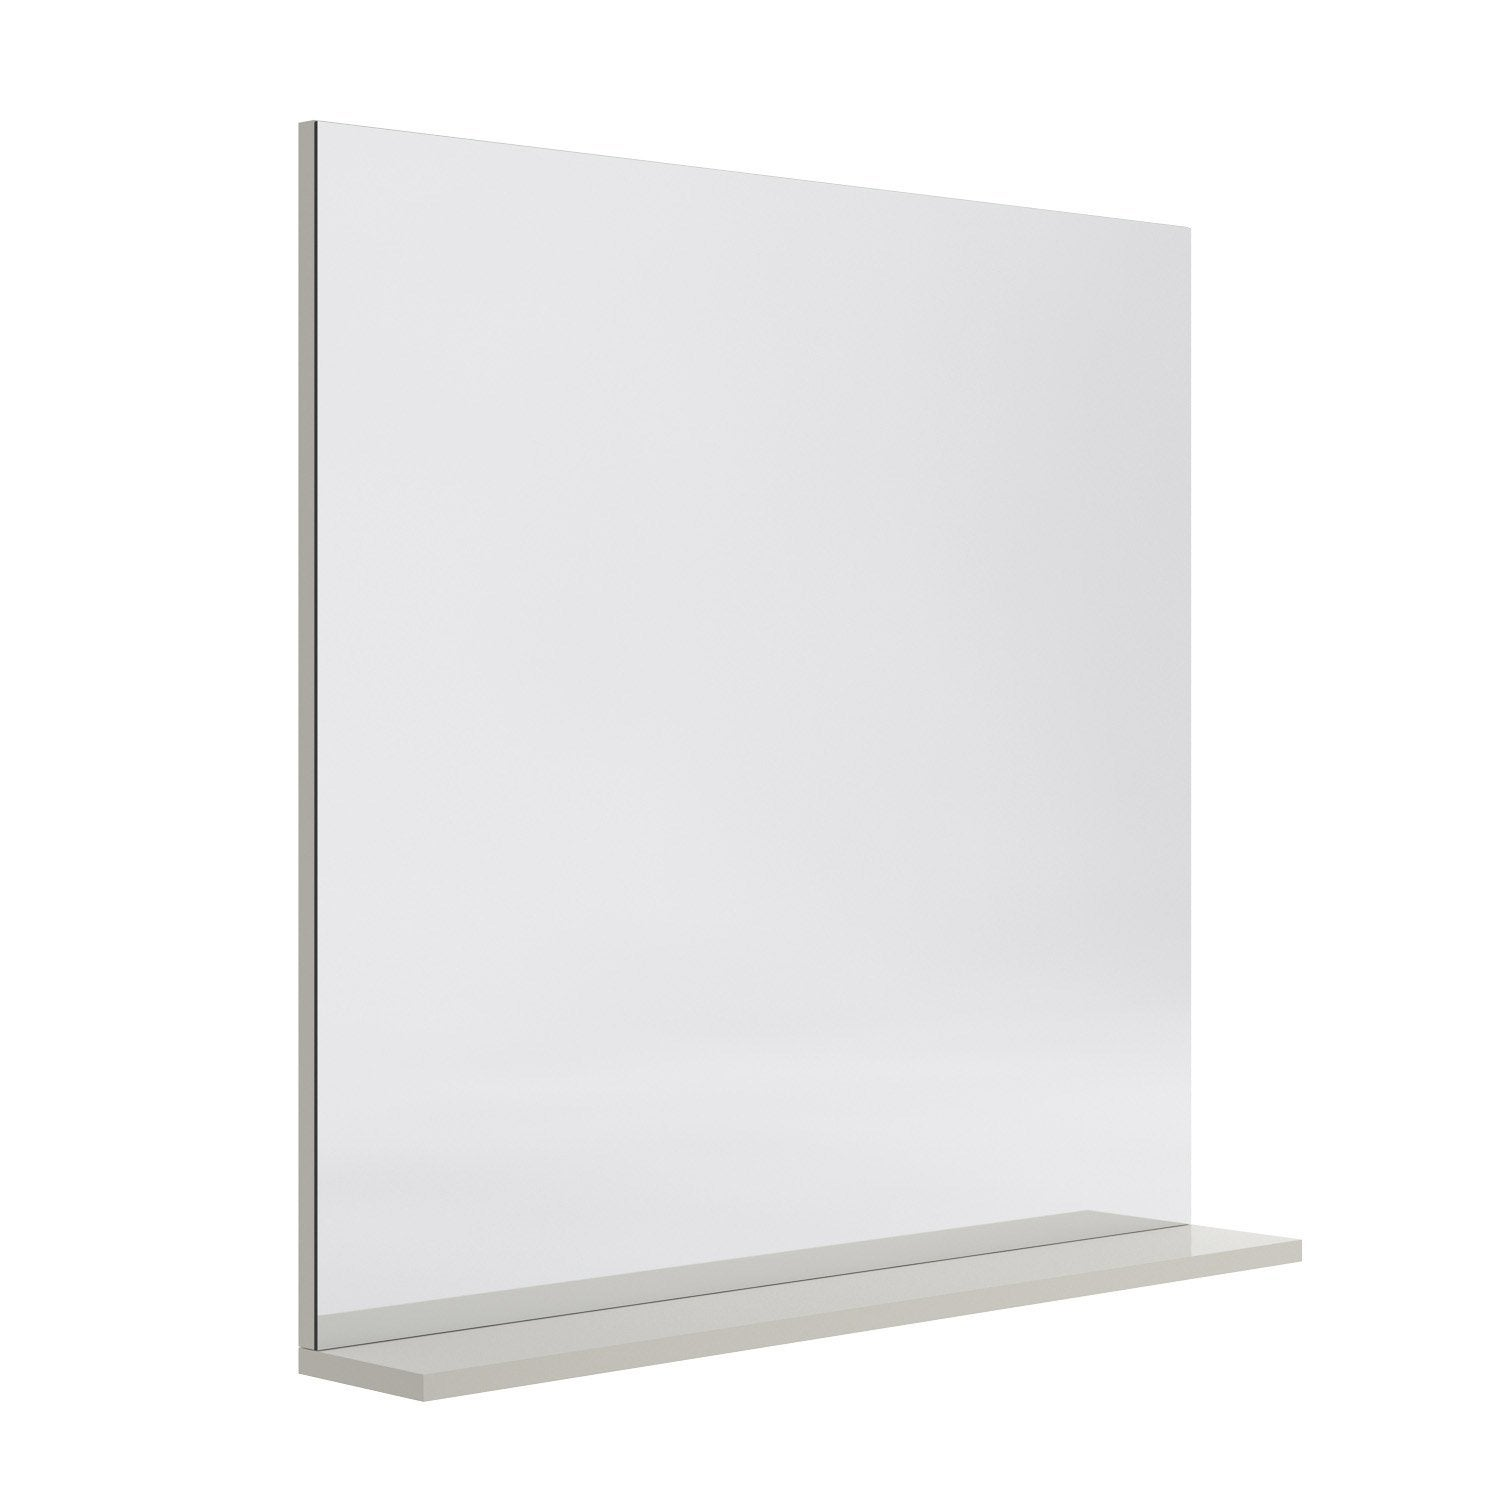 Miroir avec tablette opale leroy merlin for Miroir leroy merlin